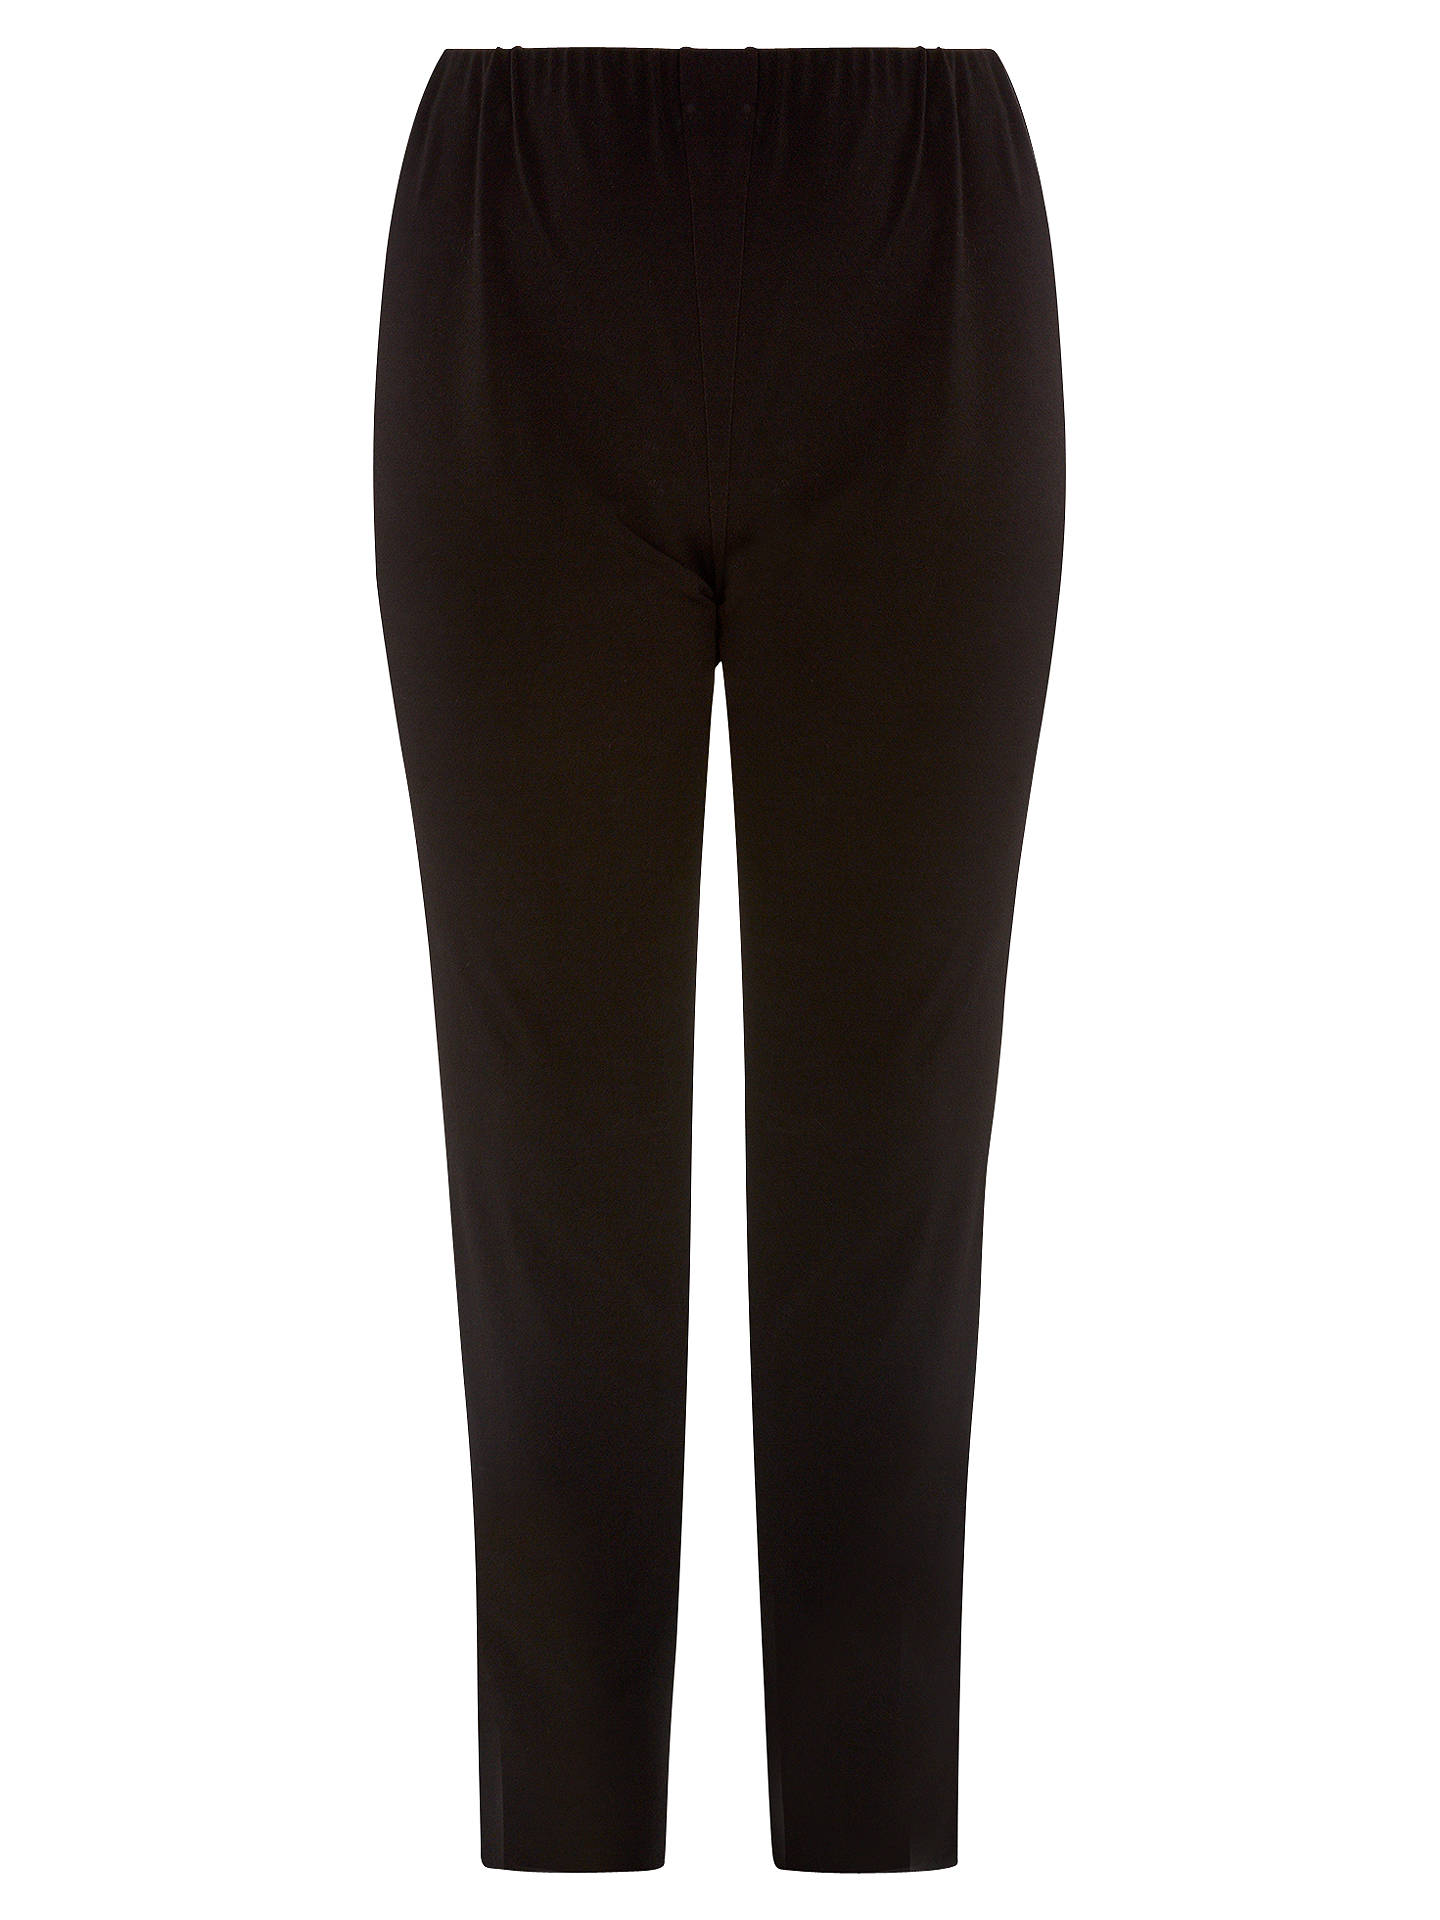 4c59fcdcf1e Buy Windsmoor Slim Leg Trousers